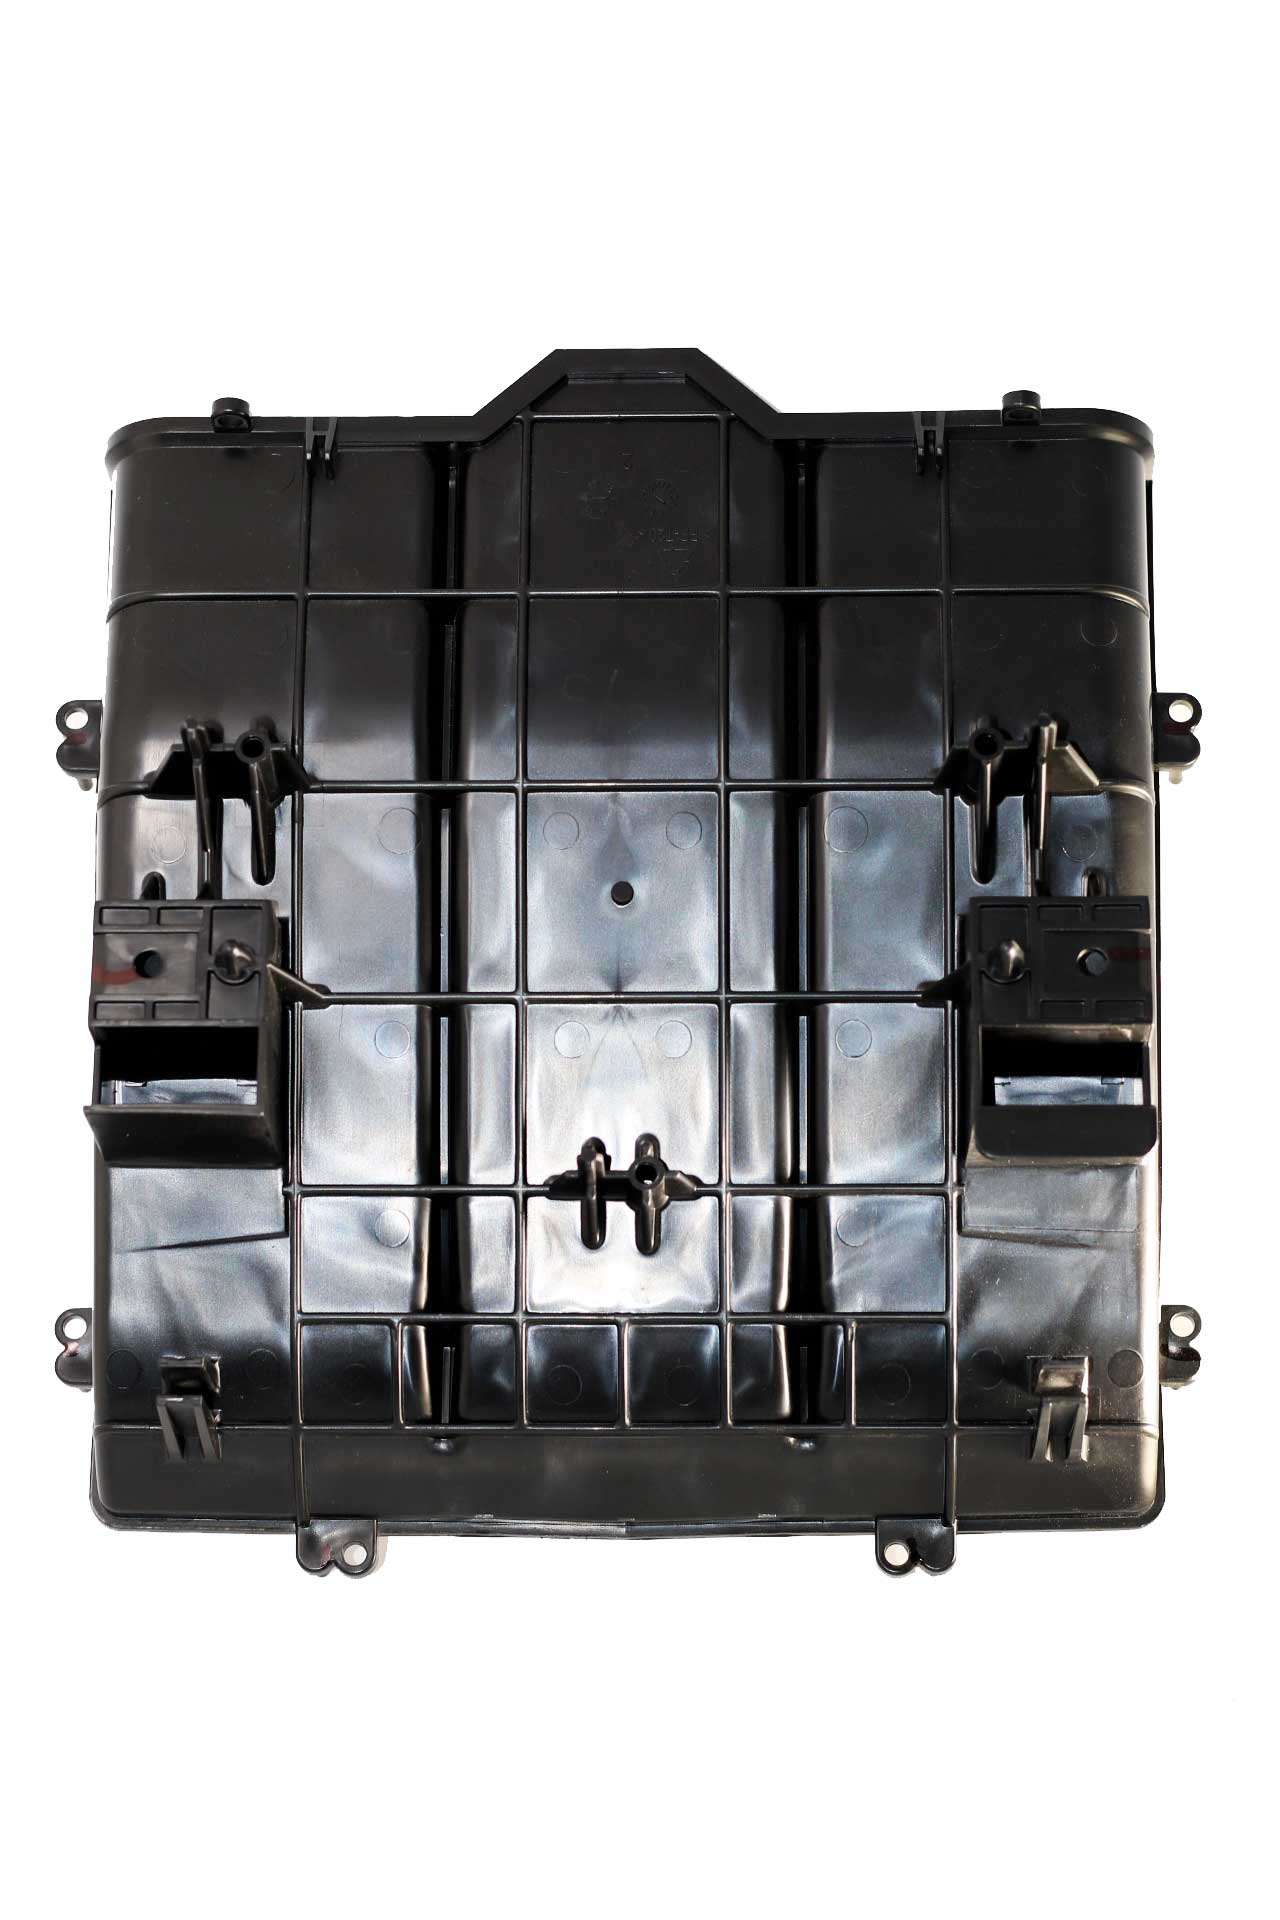 CASE ADAPTER